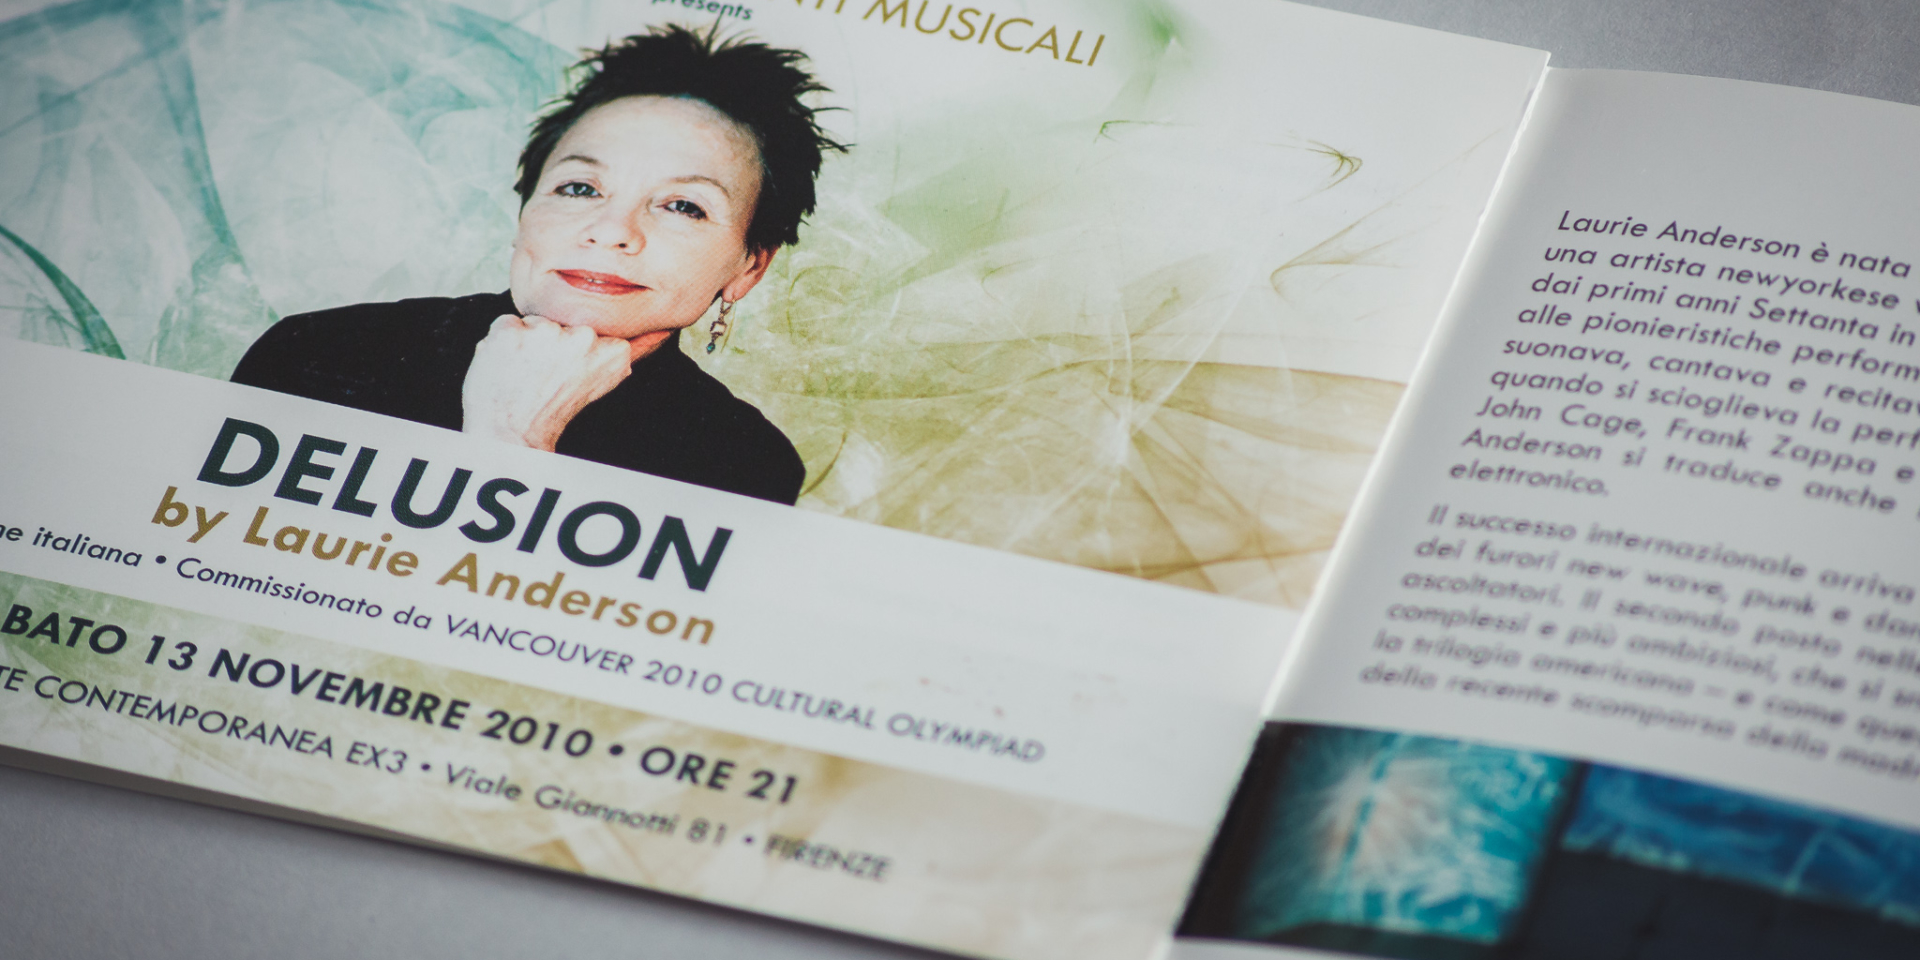 Delusion by Laurie Anderson